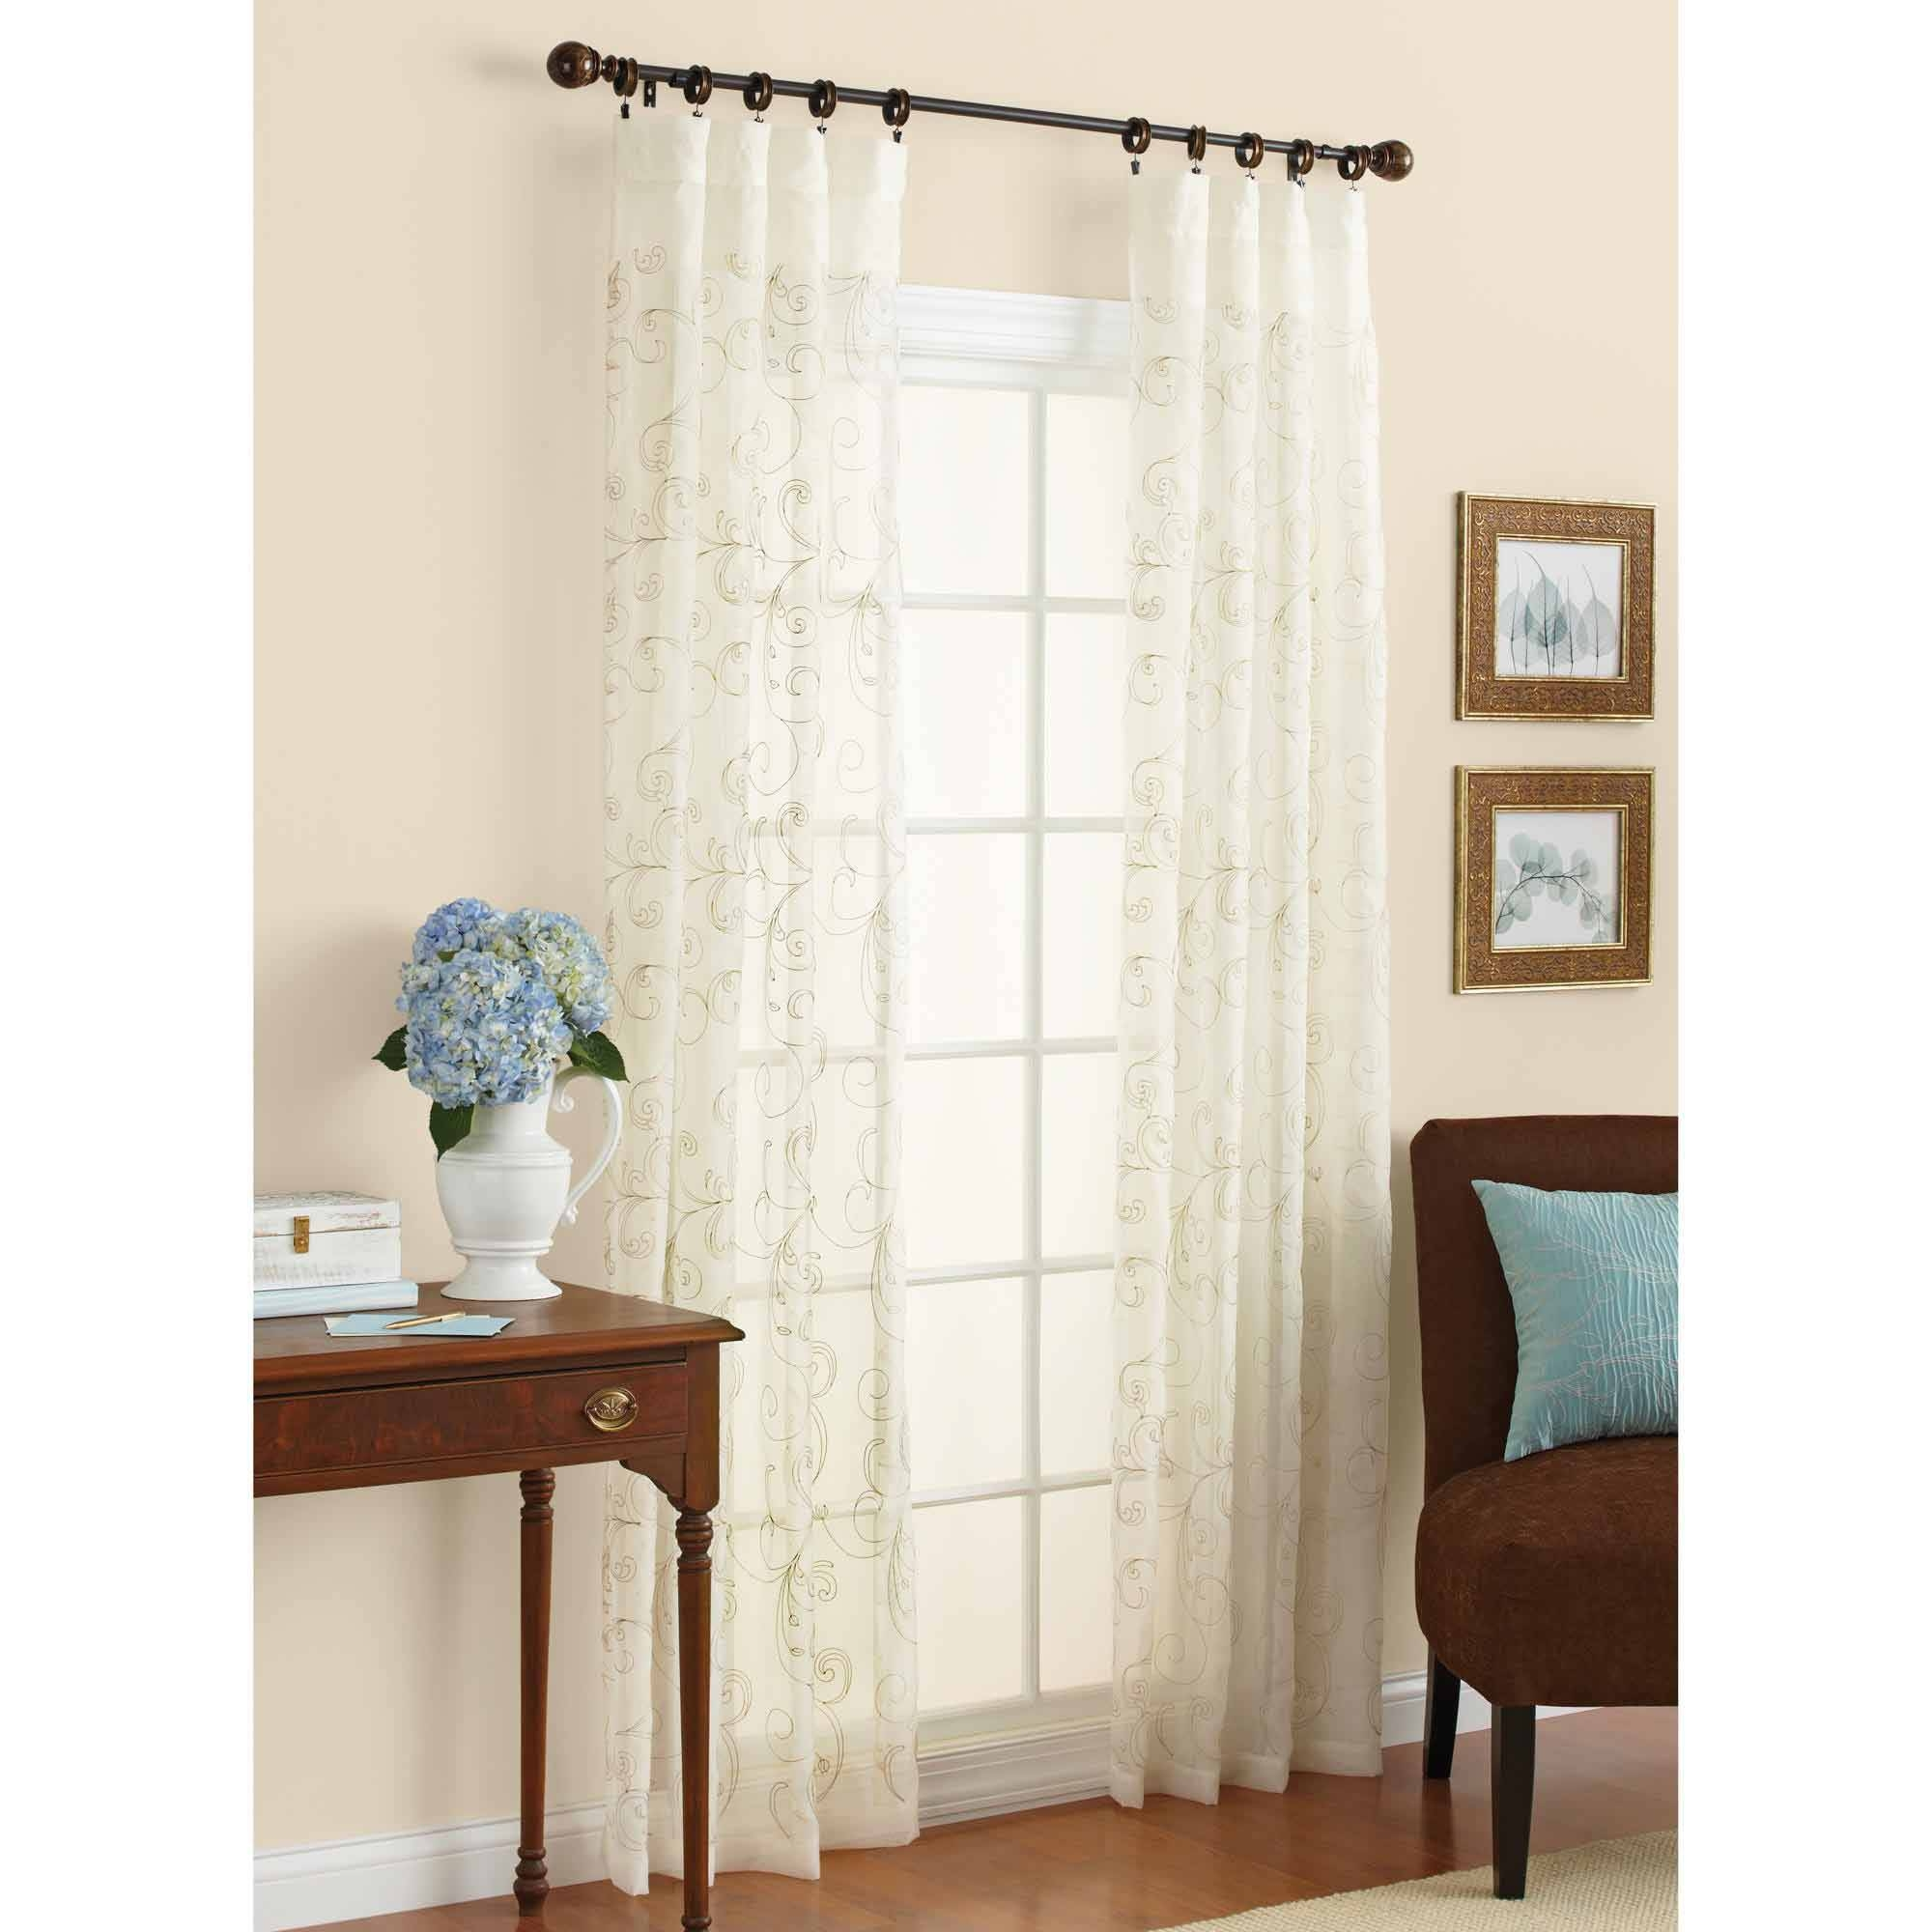 Better Homes And Gardens Embroidered Sheer Curtain Panel Walmart With Regard To Curtains Sheers (Image 4 of 25)